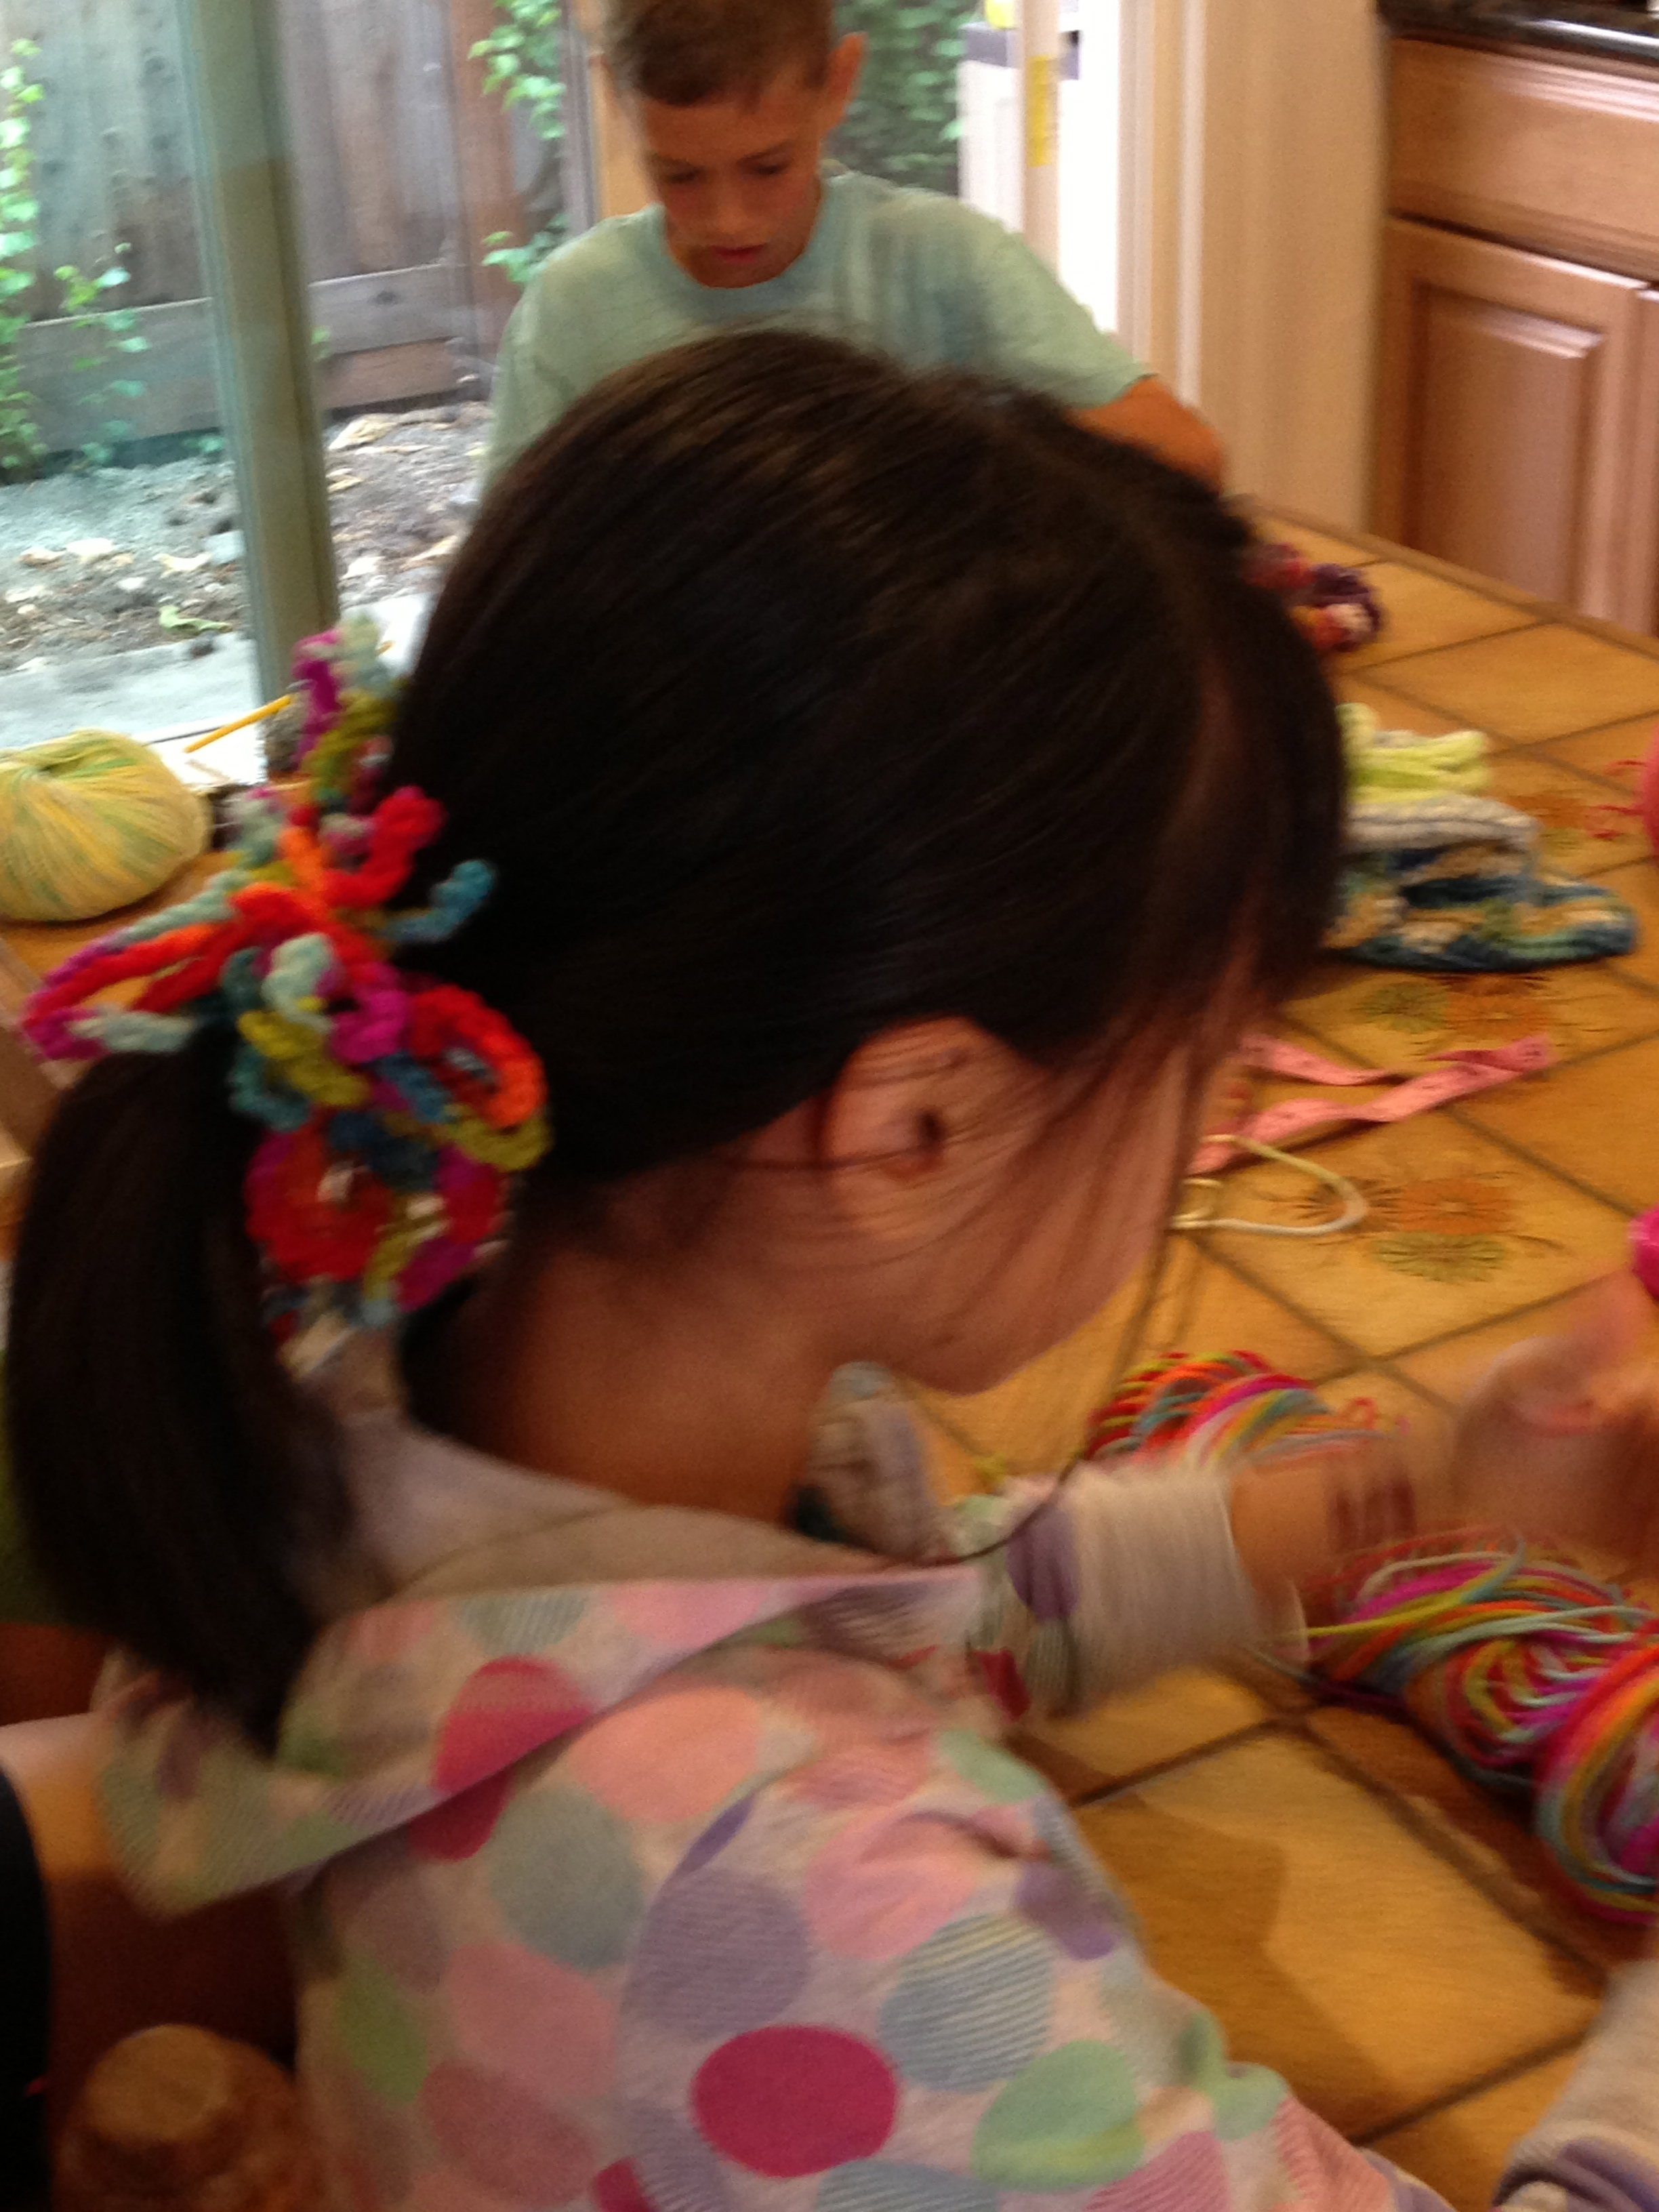 Beautifully colored hair scrunchie.